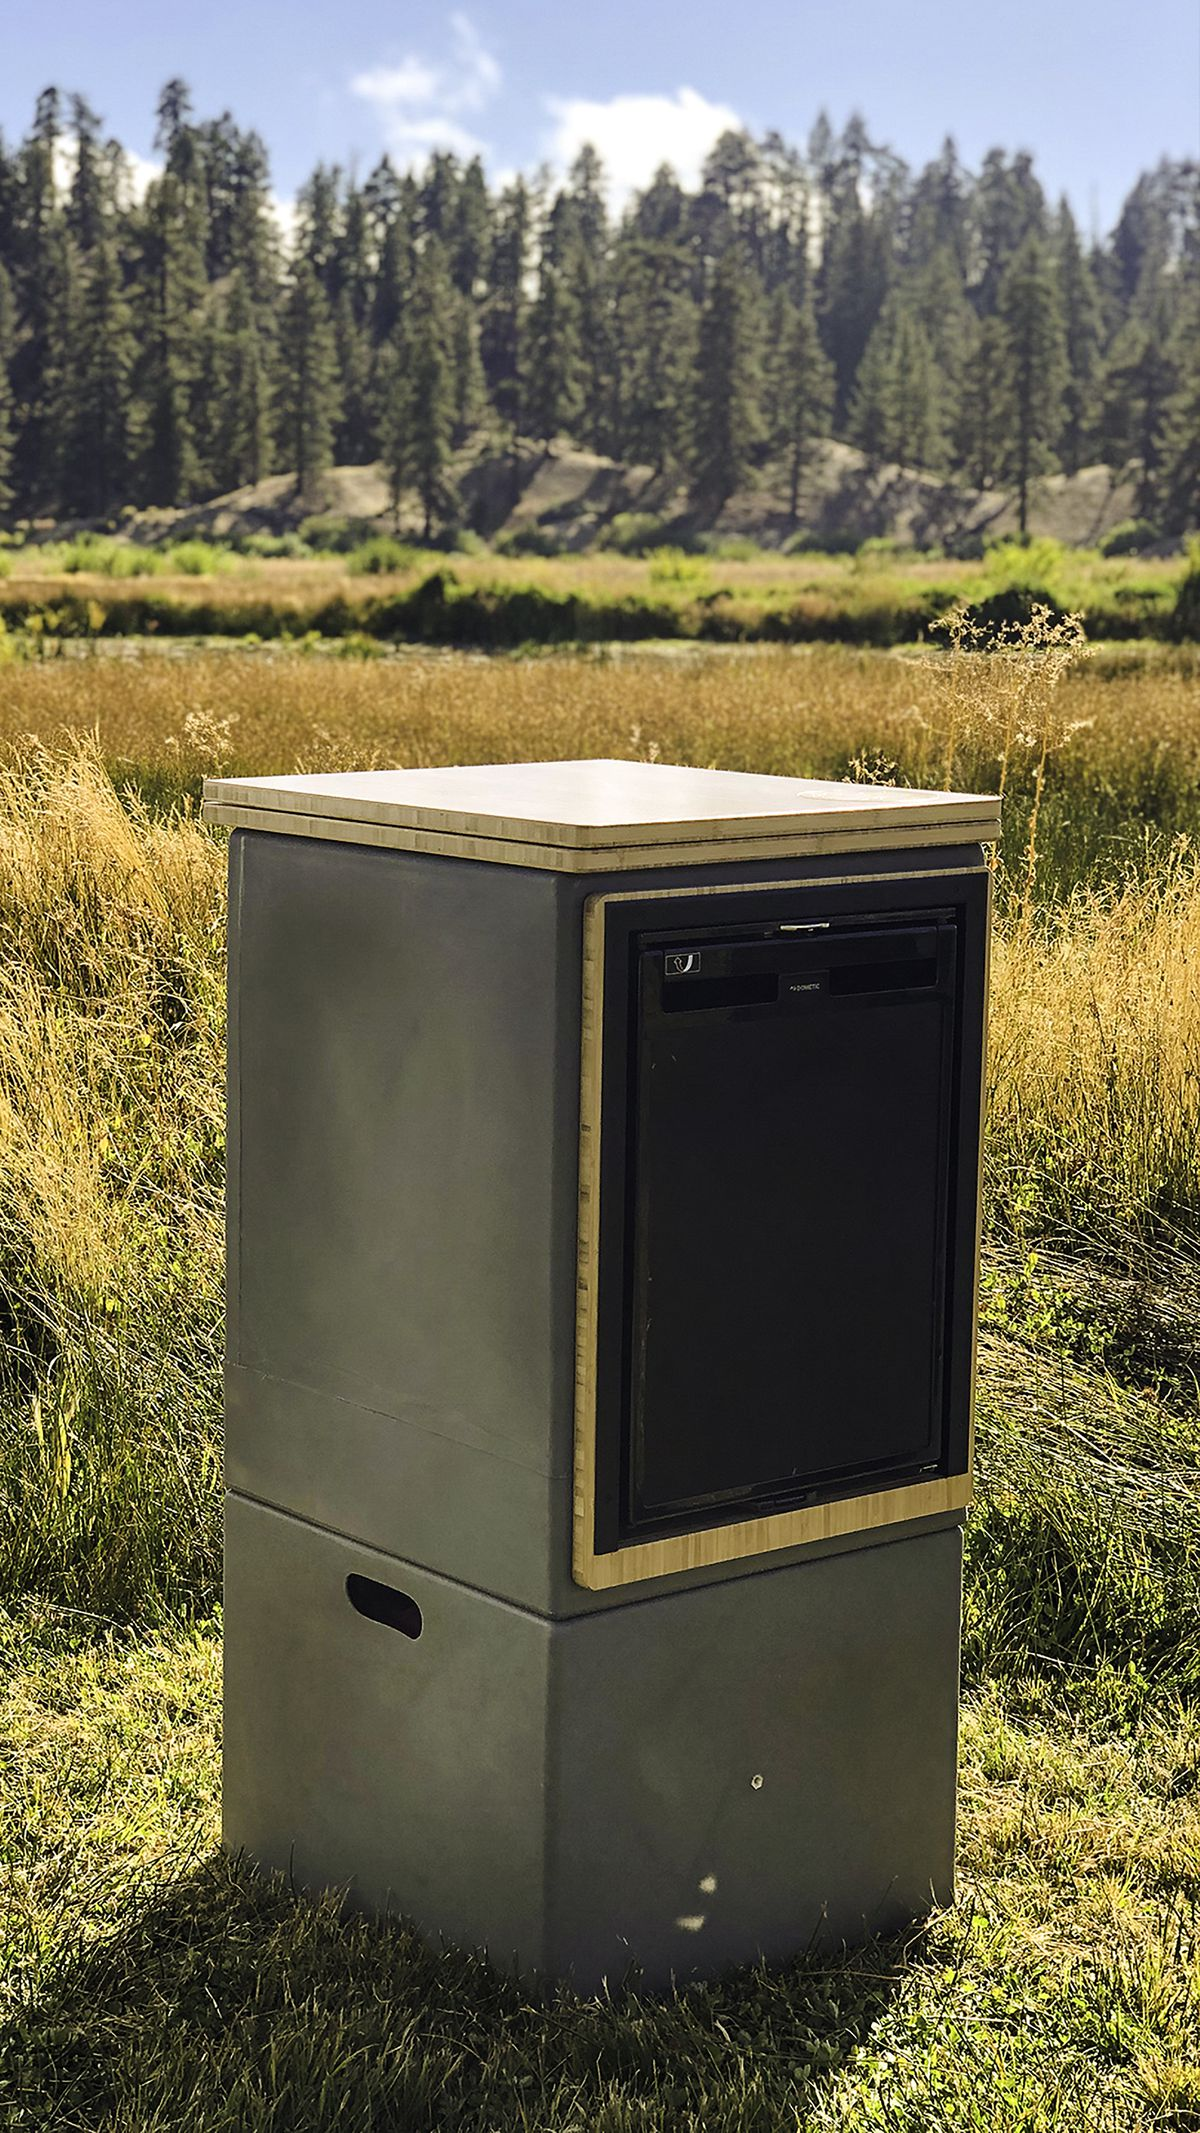 A countertop height cube sits in a field. The box features a kitchen countertop and a refrigerator.